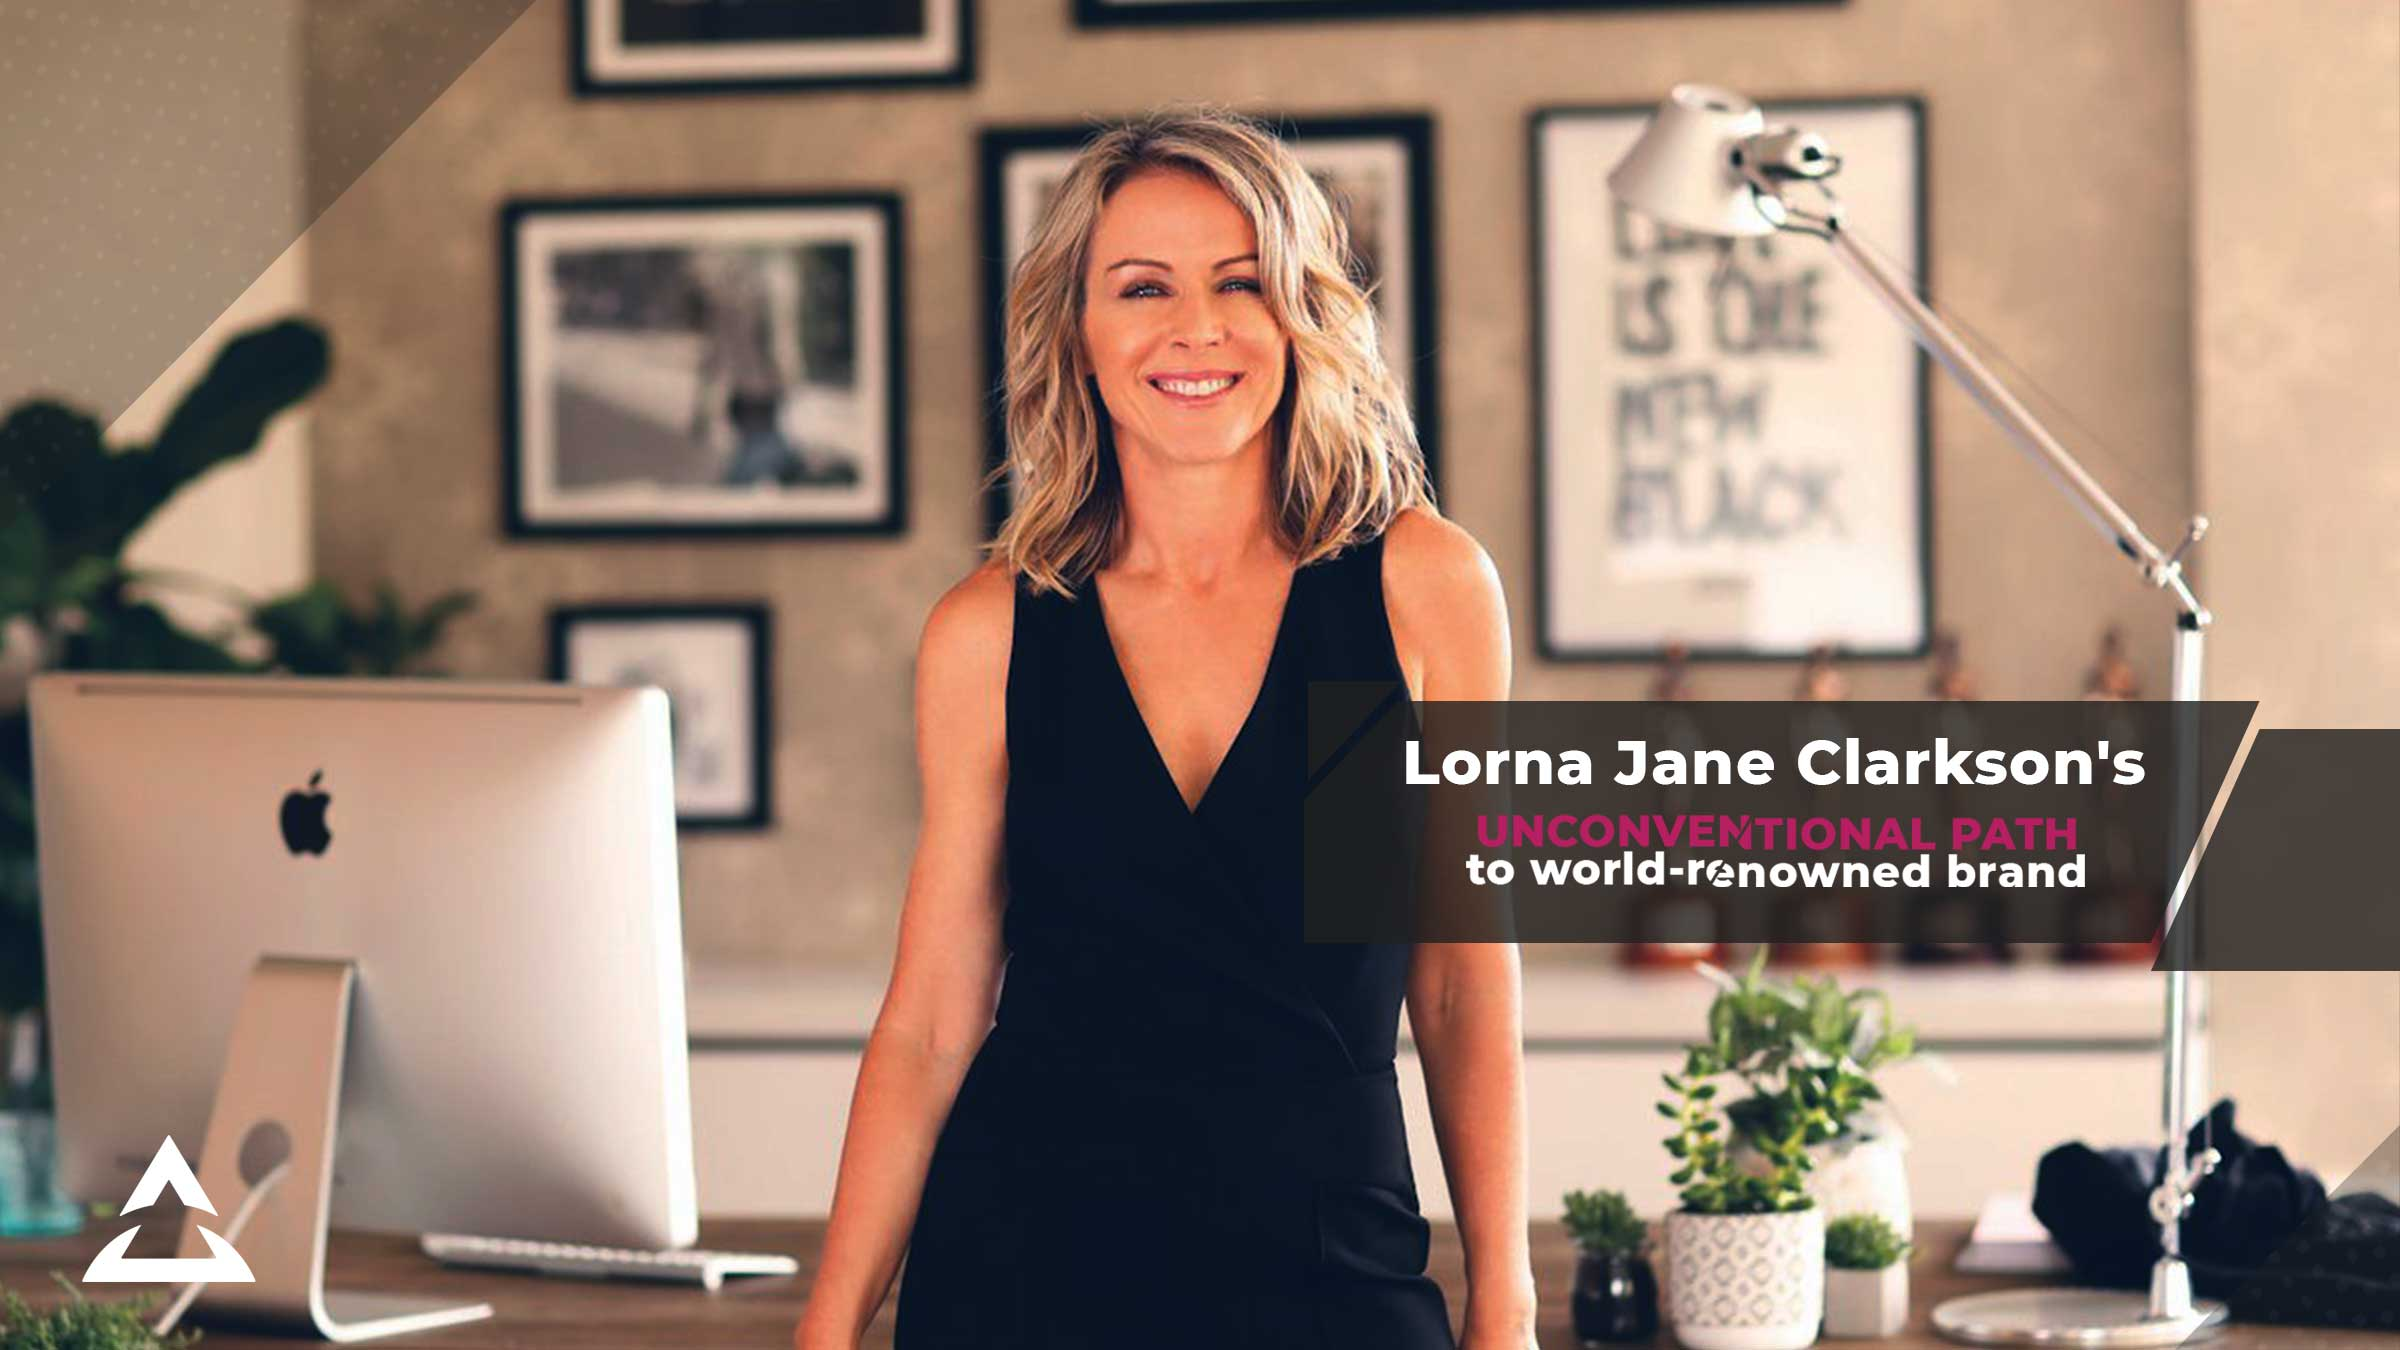 Lorna Jane Clarkson's unconventional path to world-renowned brand